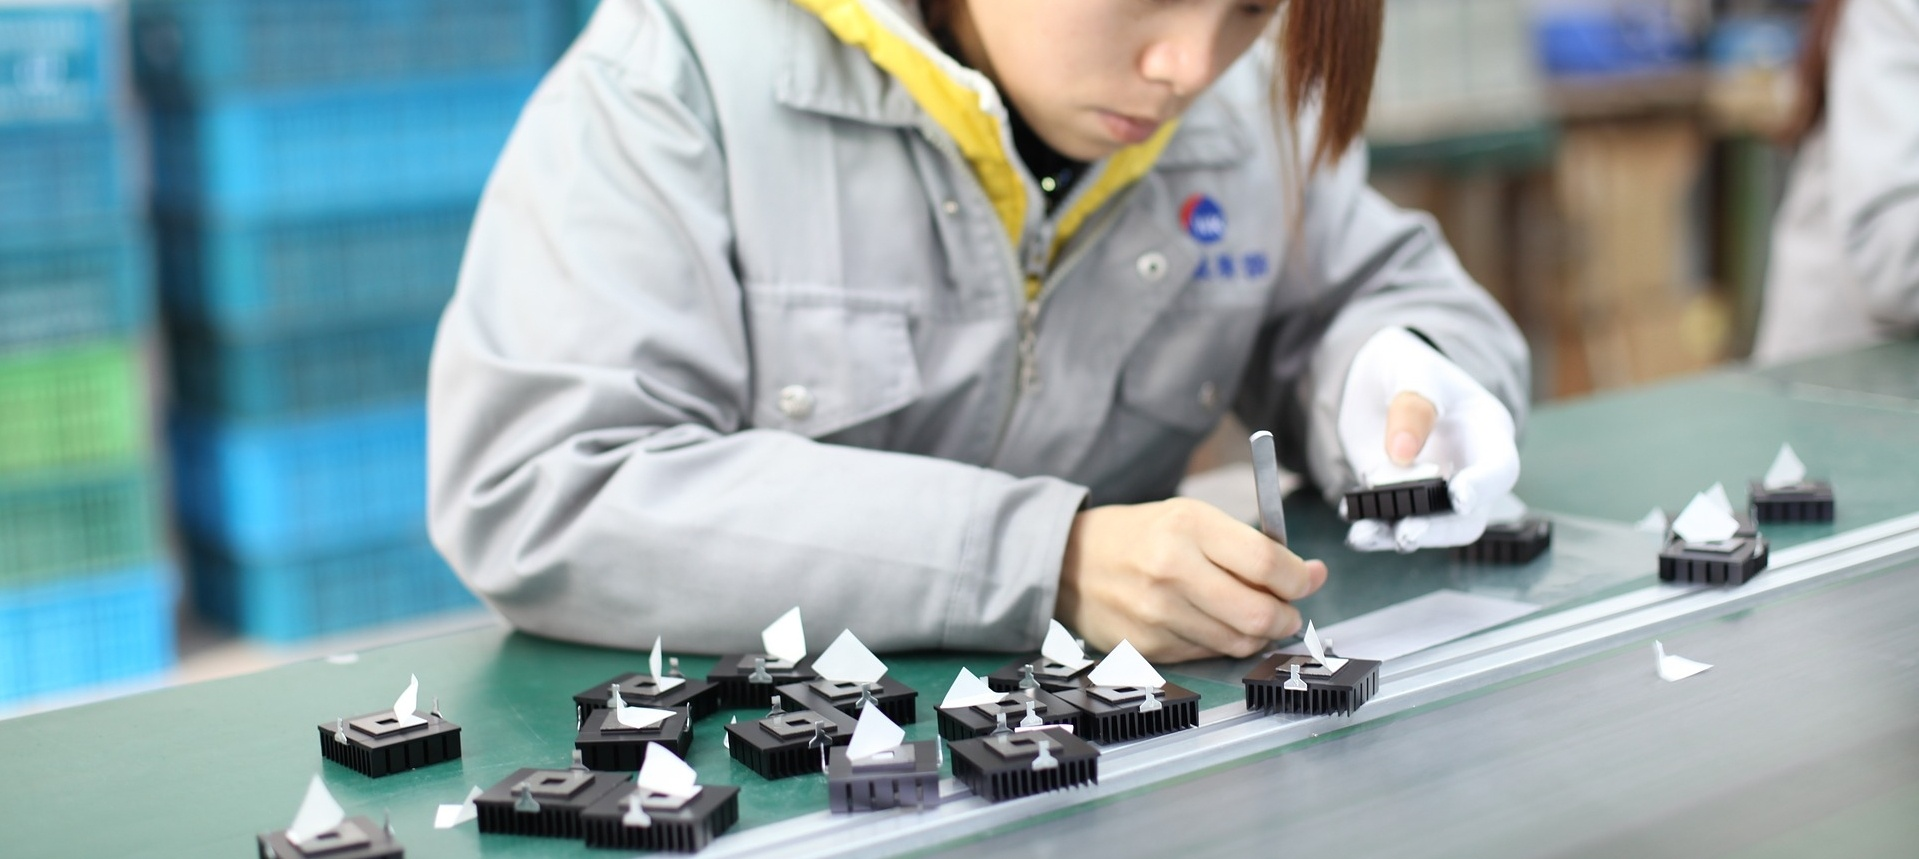 contract-assembly-services-124617-edited.jpg